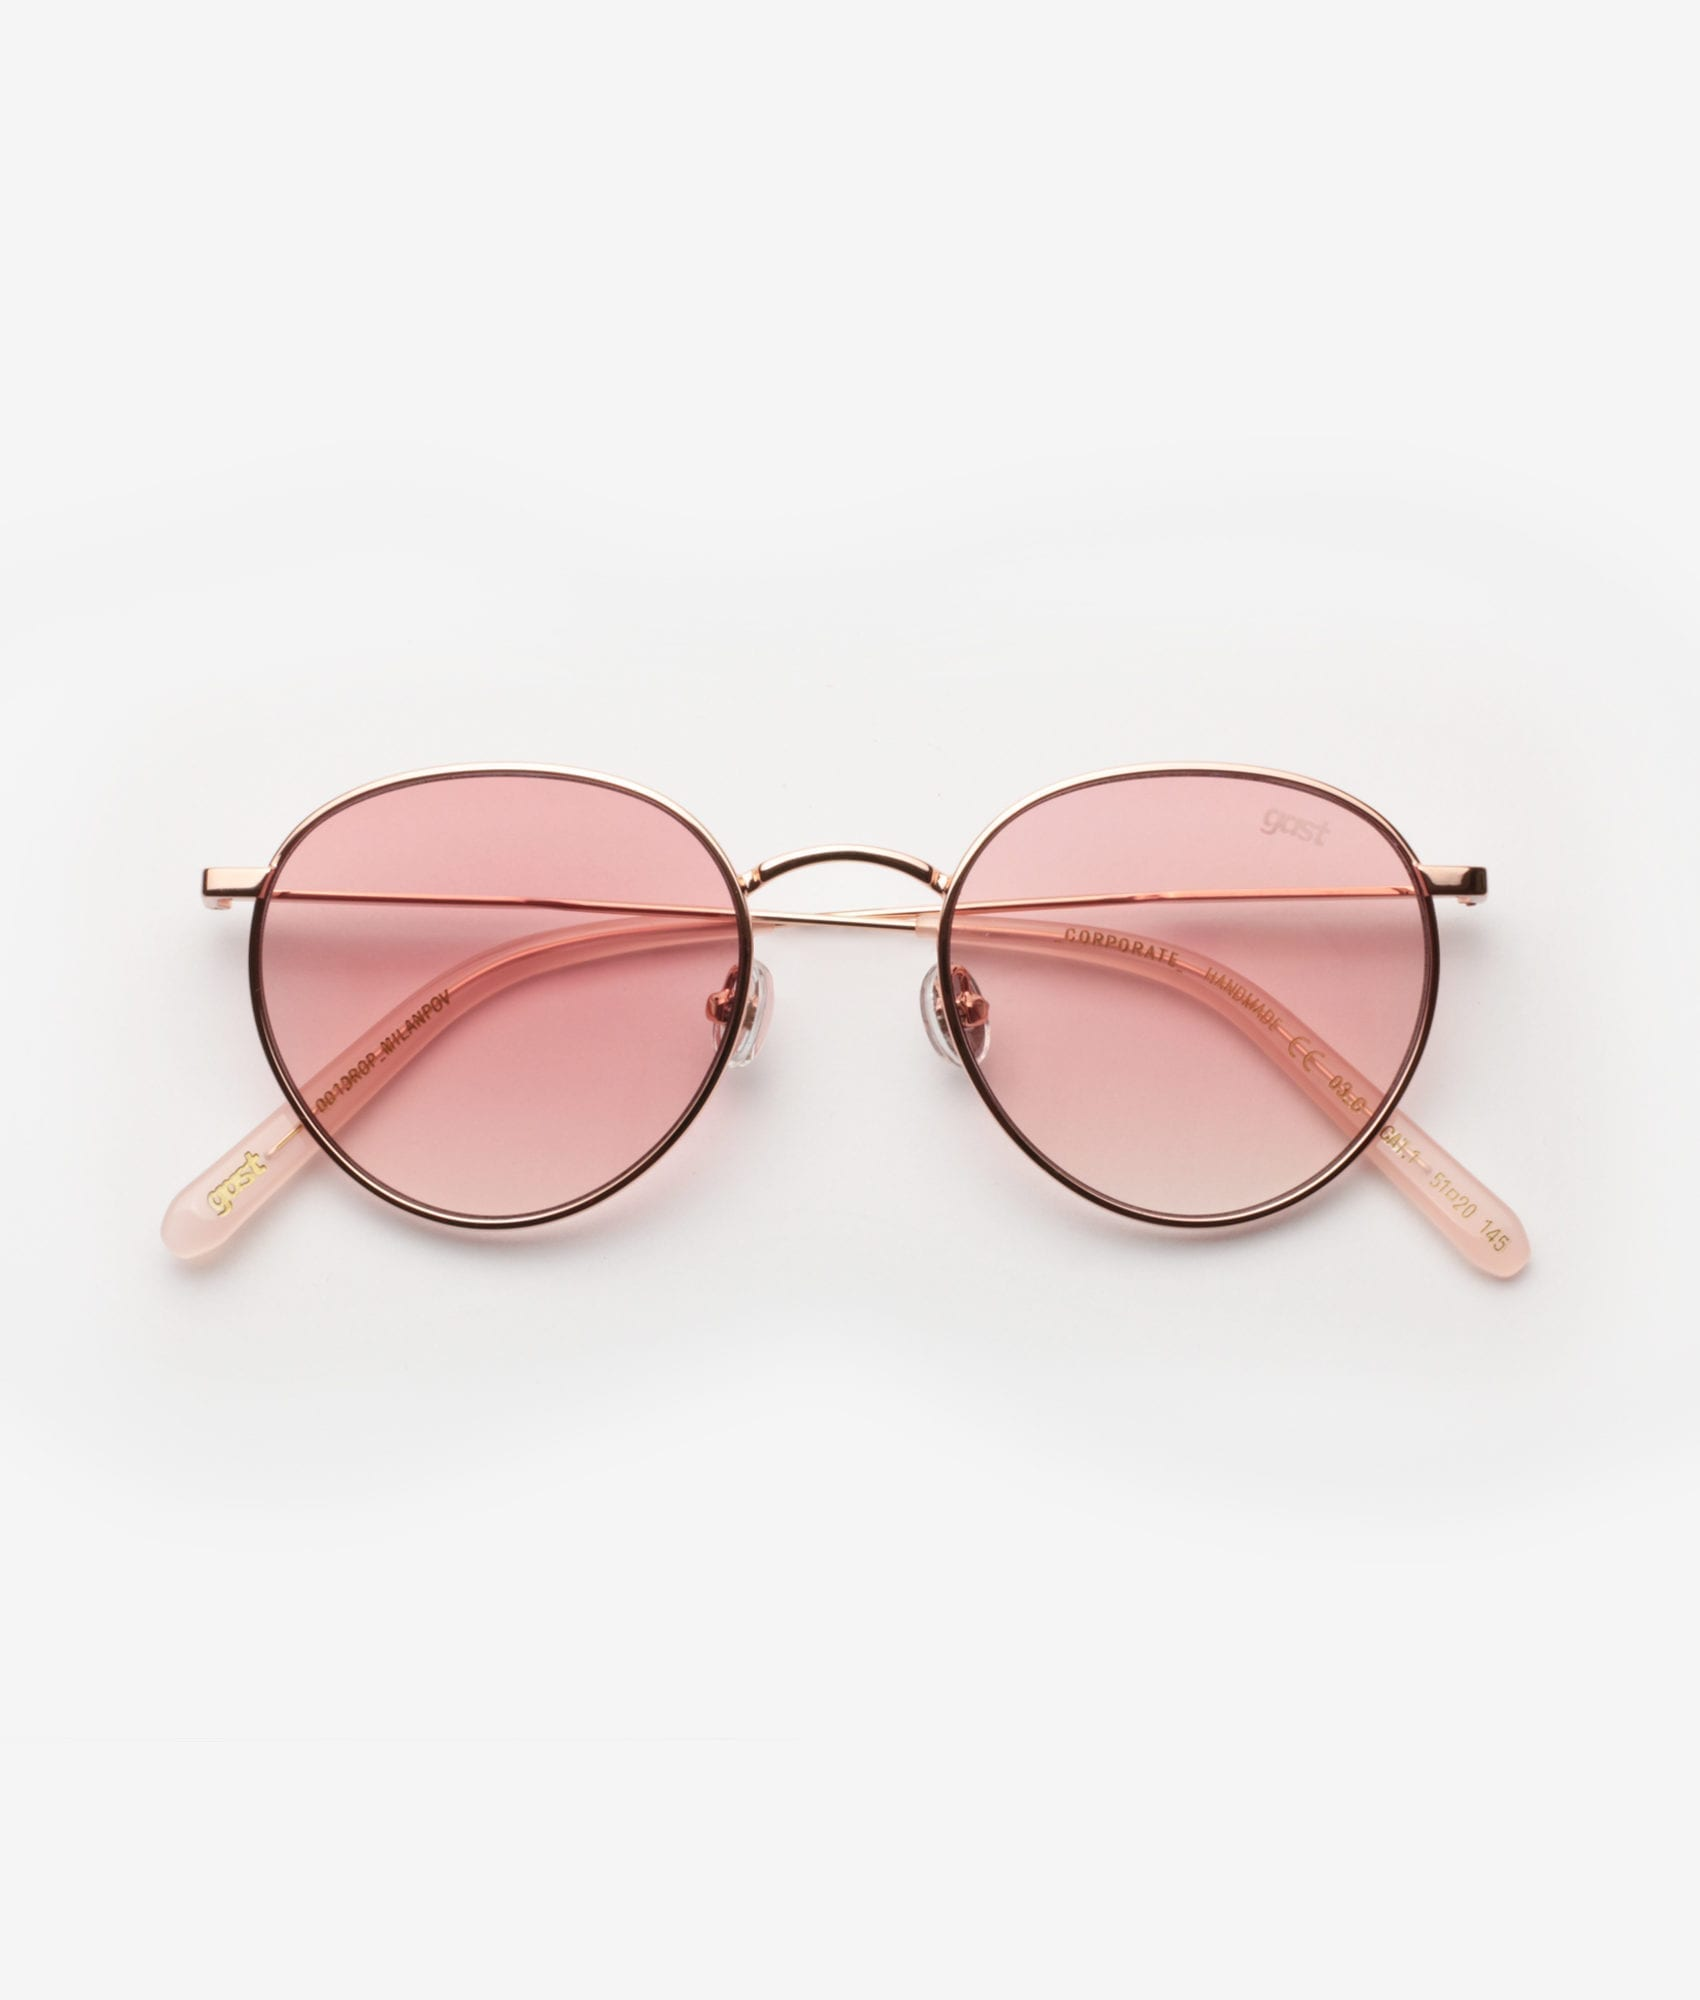 CORPORATE Rose Gold Gast Sunglasses